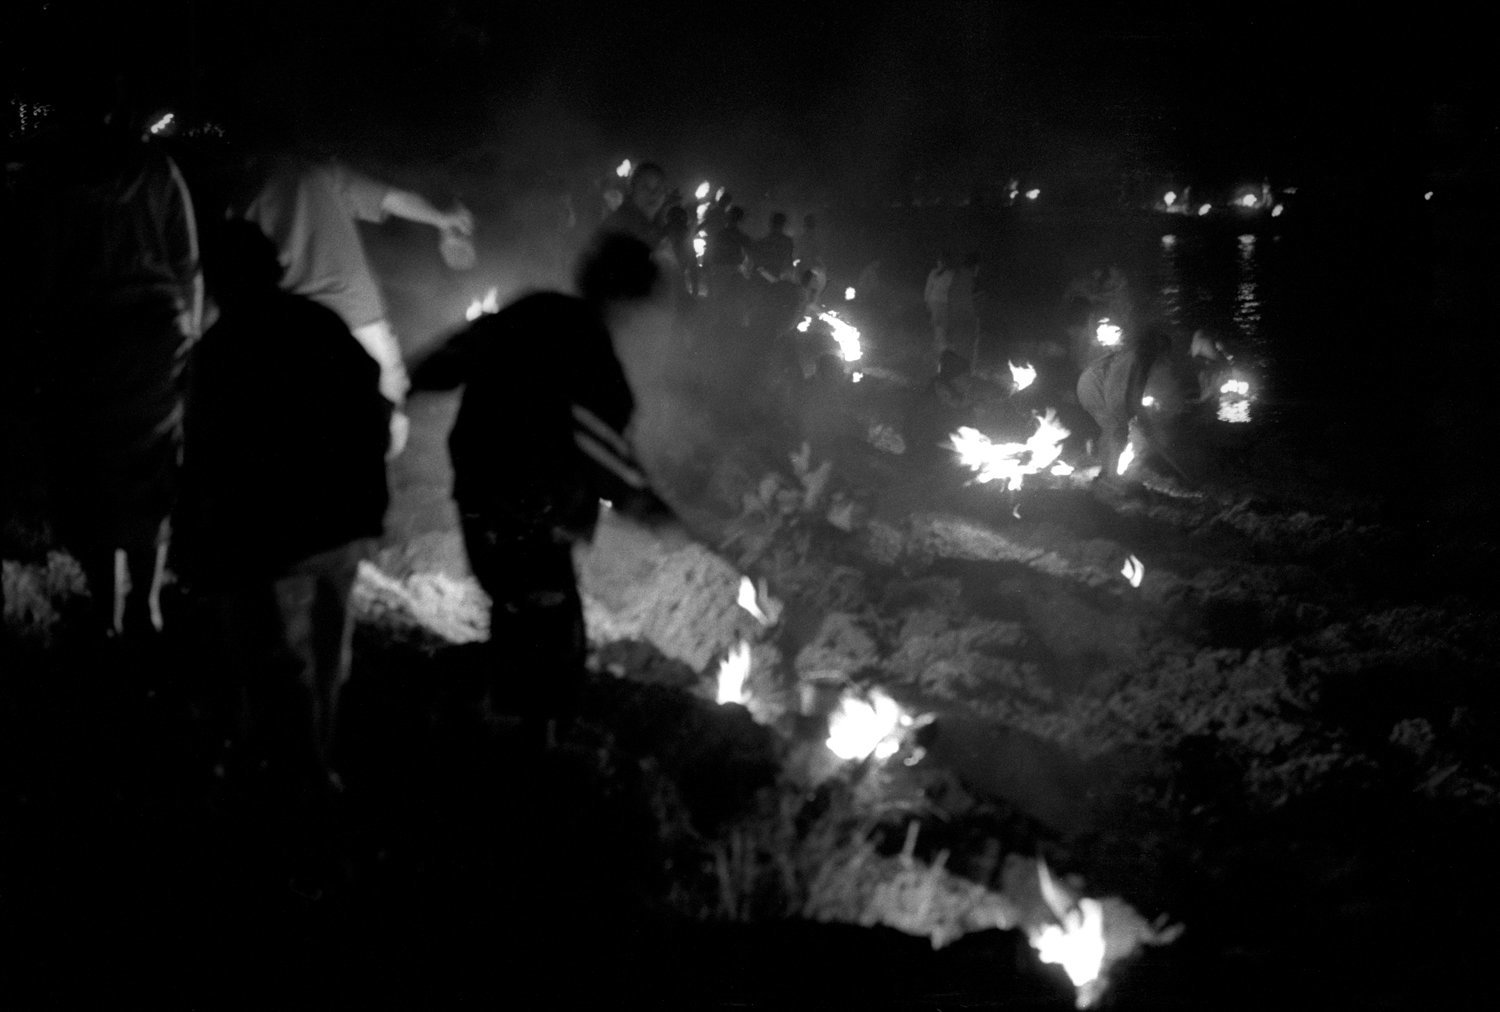 Tamara Voninski / oculi